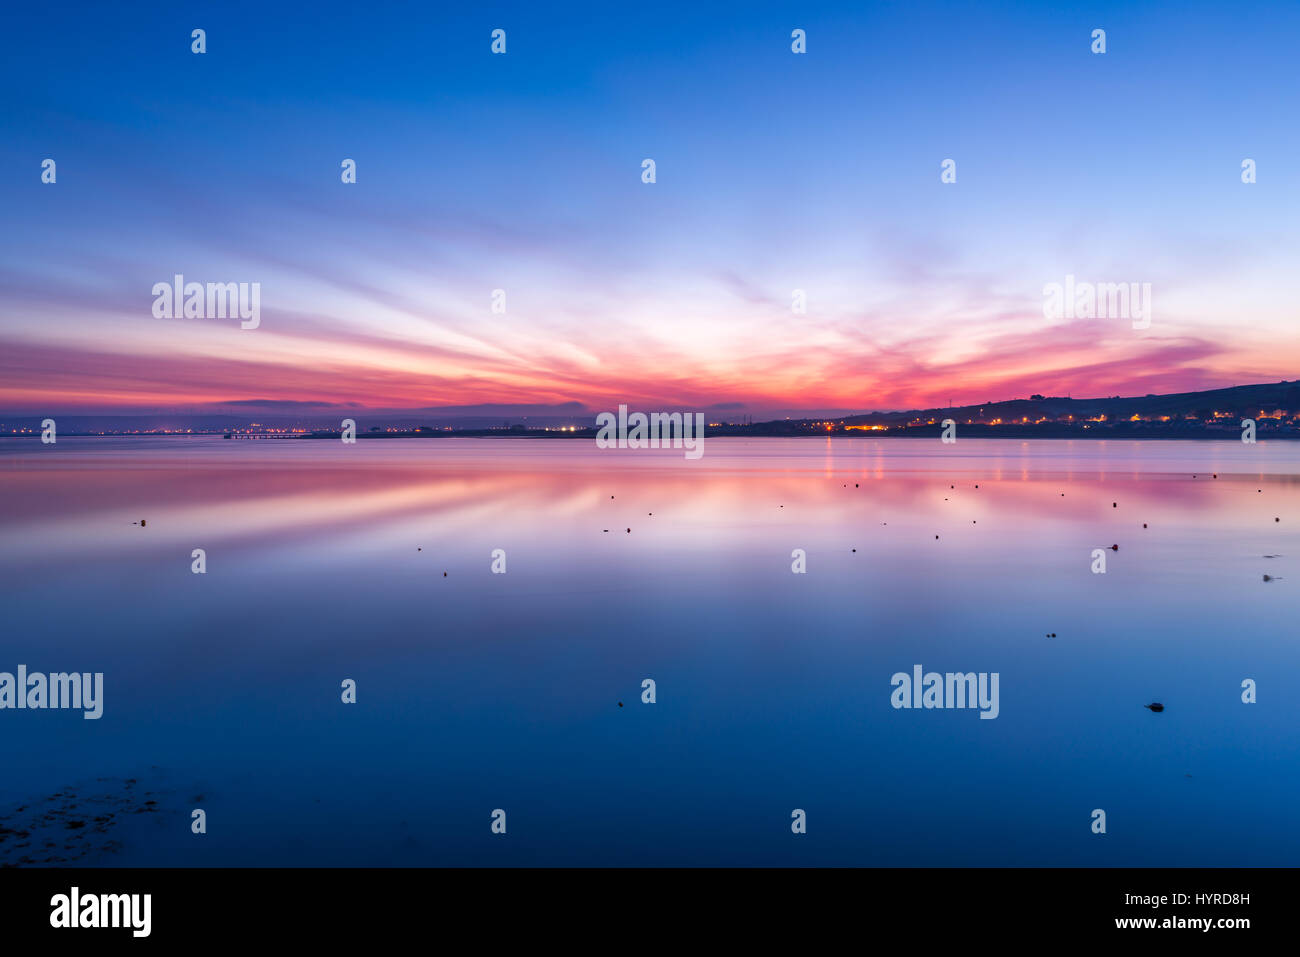 As the sun rises over Instow, the dramatic rays of sunllight reflect in the still waters of the the estuary, where - Stock Image